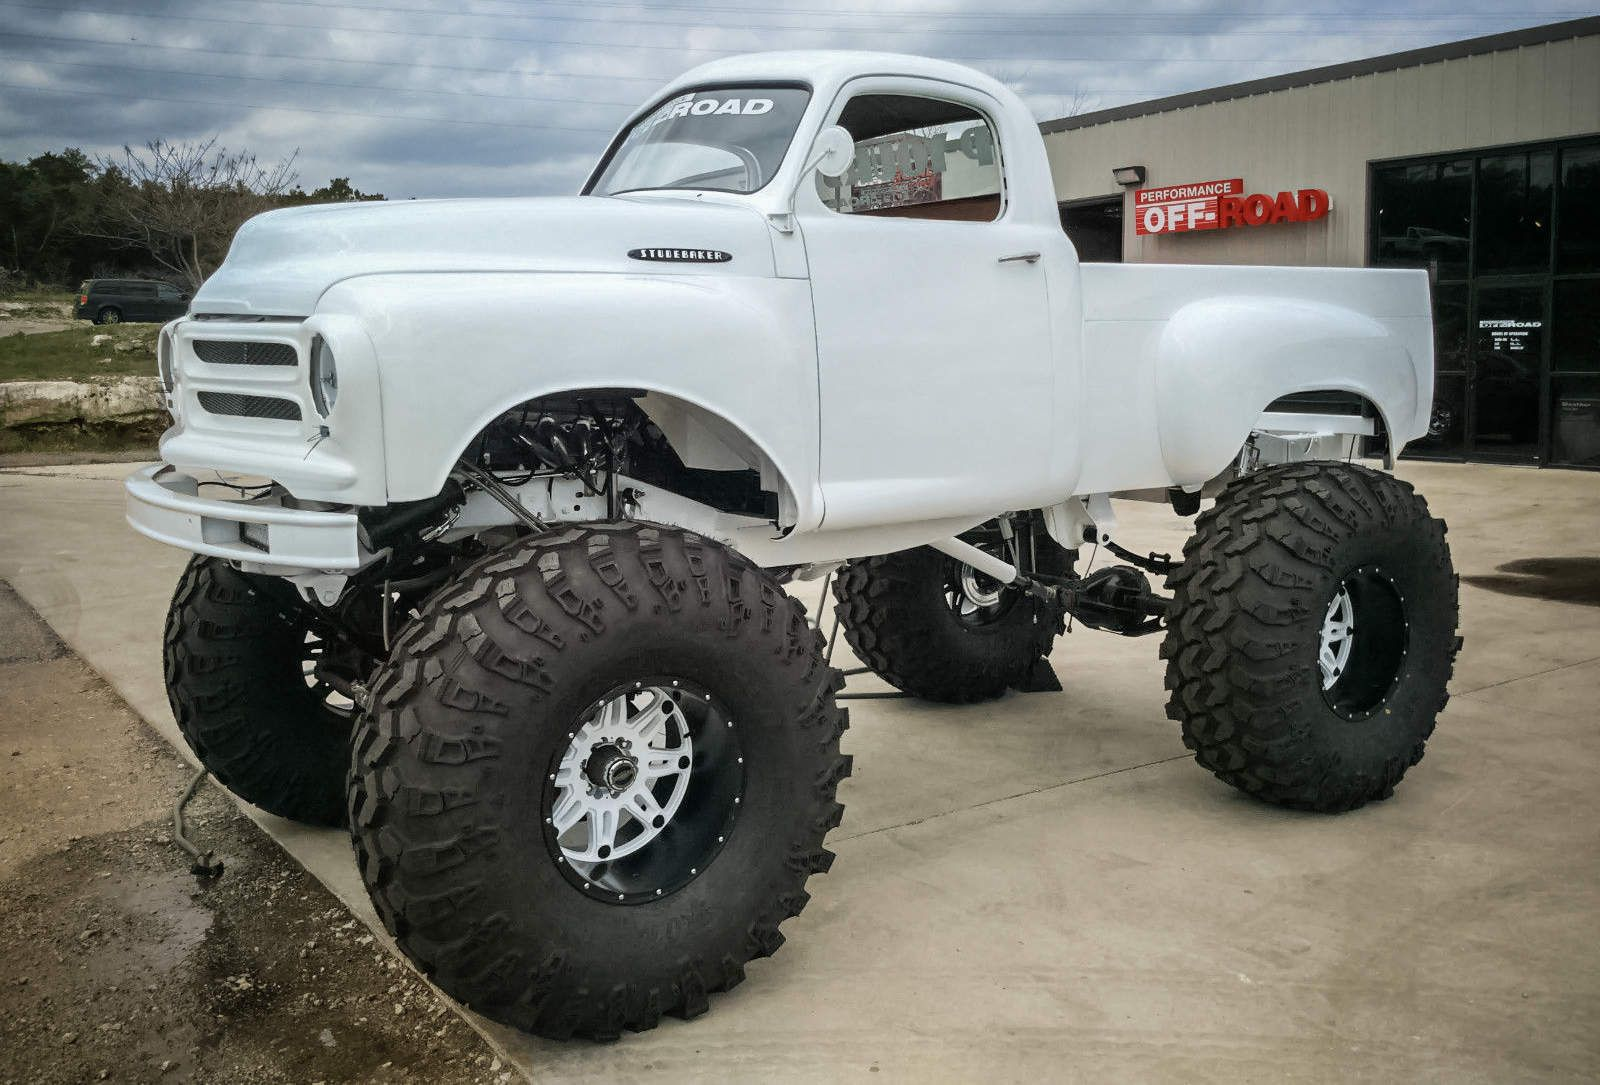 The Best Cars For Sale On eBay, SEMA Edition | Trucks | Pinterest ...